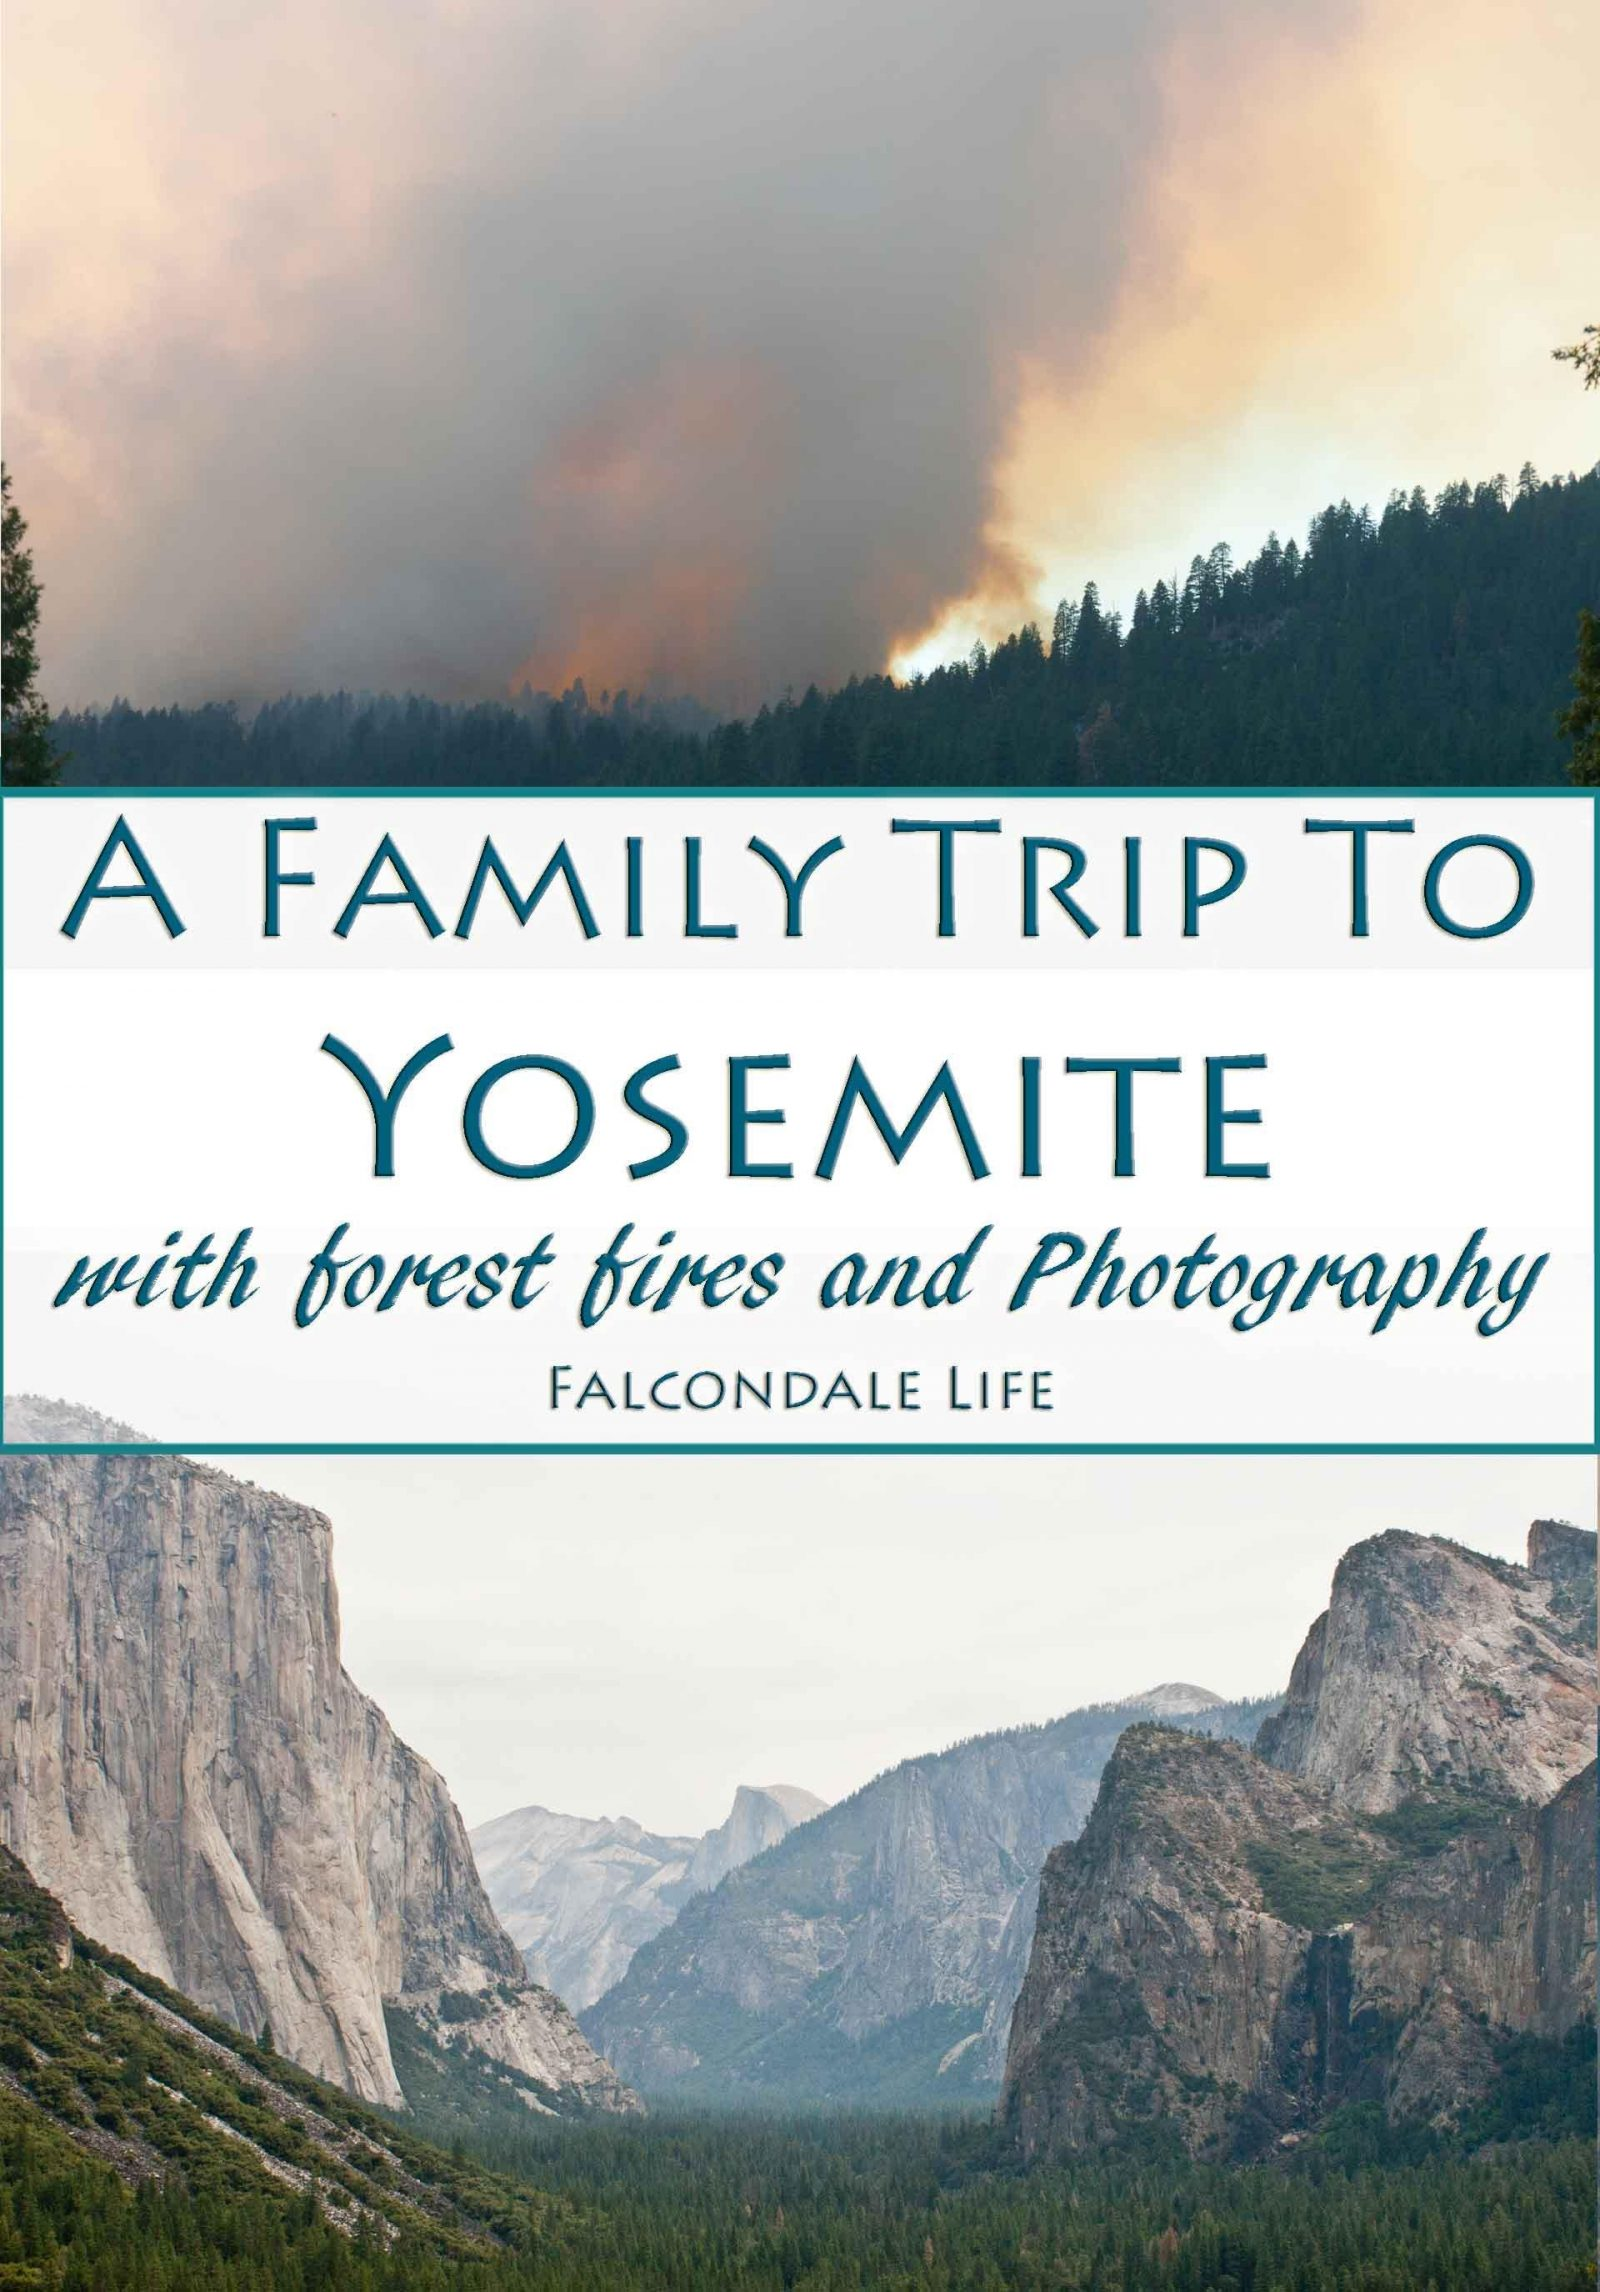 A Family Trip to Yosemite with Forest Fires and Photography on Falcondale Life Blog. Smoke from Big Meadow Fire 2009. Our family trip to Yosemite coincided with the Big Meadow Fire of 2009. Smoke and a broken camera made photography difficult, and we had British reserve too which added to our photography woes. But the children enjoyed it! Read more on the blog.